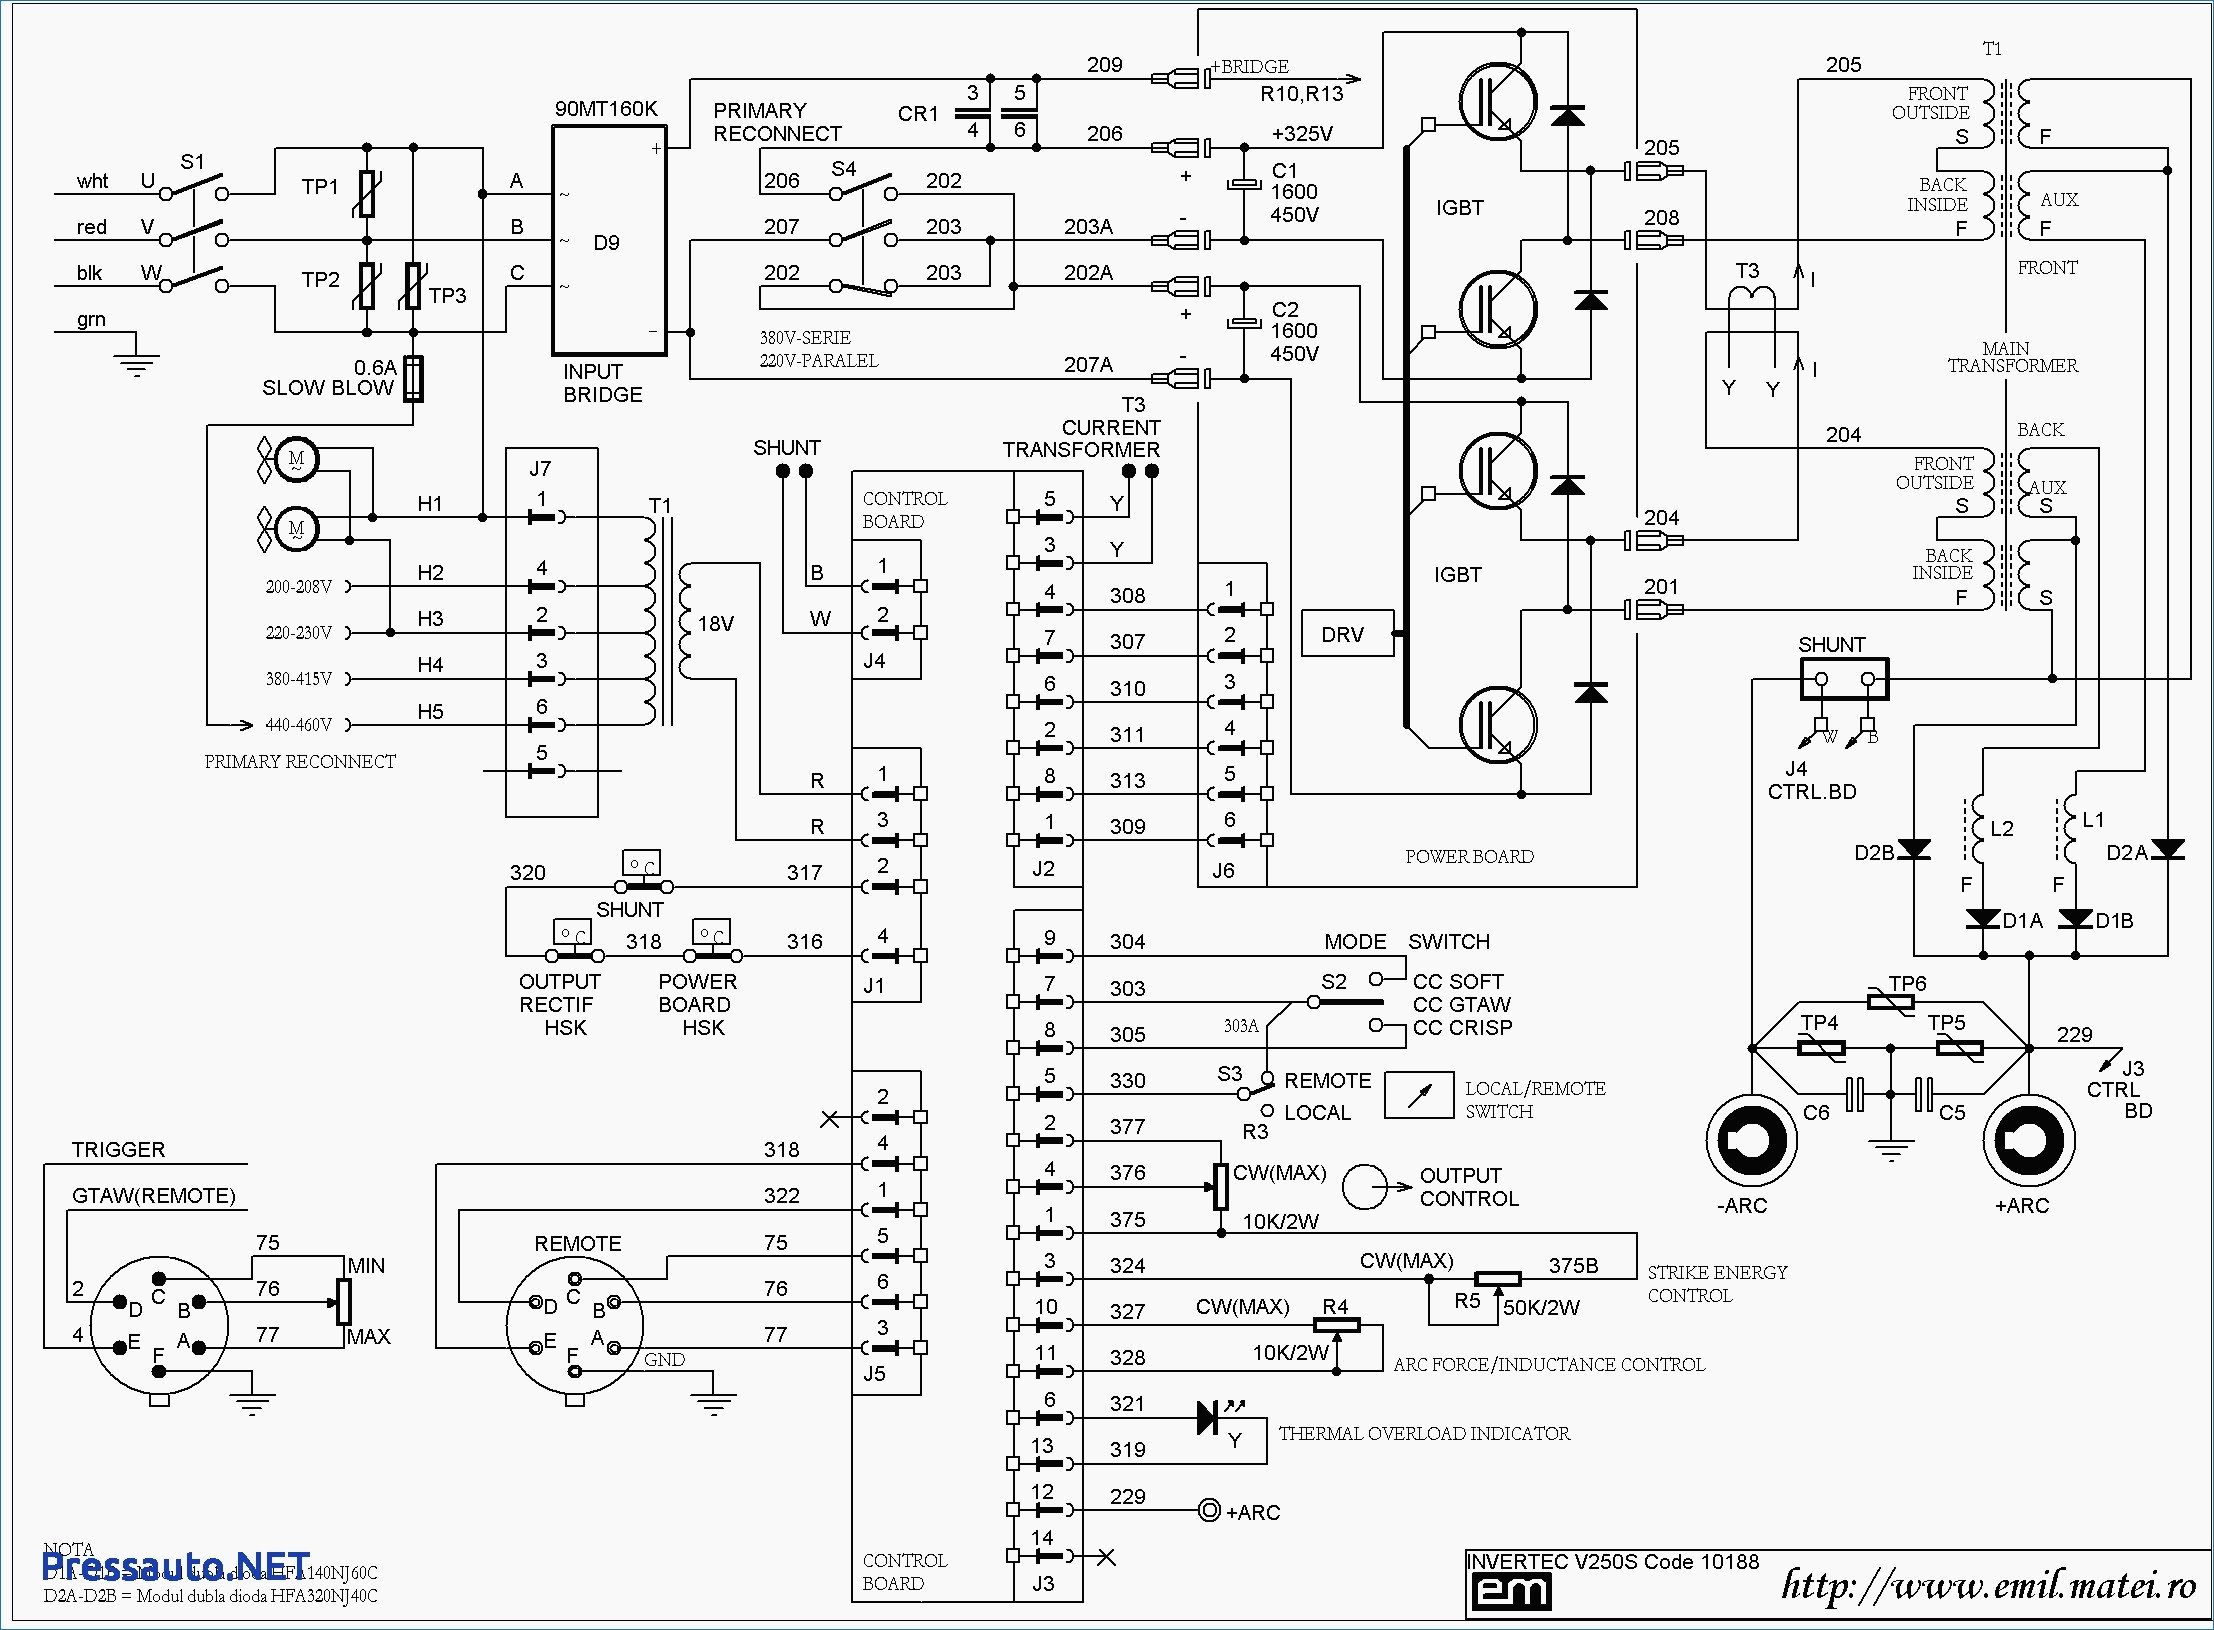 Tig Welder Foot Pedal Wiring Diagram from static-cdn.imageservice.cloud